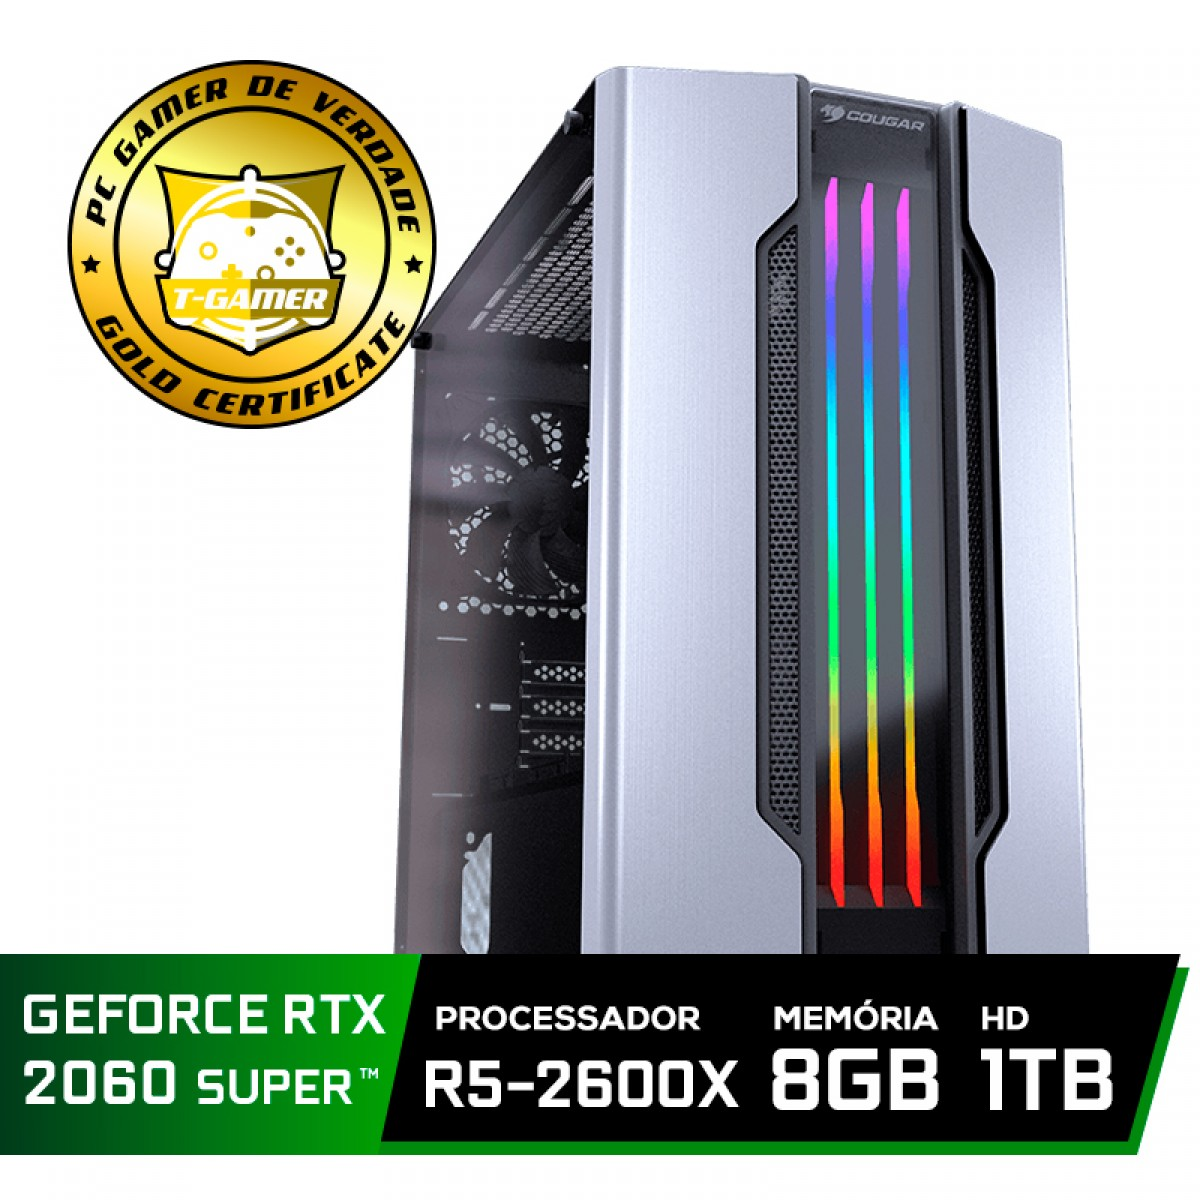 Pc Gamer Super Tera Edition AMD Ryzen 5 2600X / GeForce RTX 2060 Super / DDR4 8GB / HD 1TB / 600W